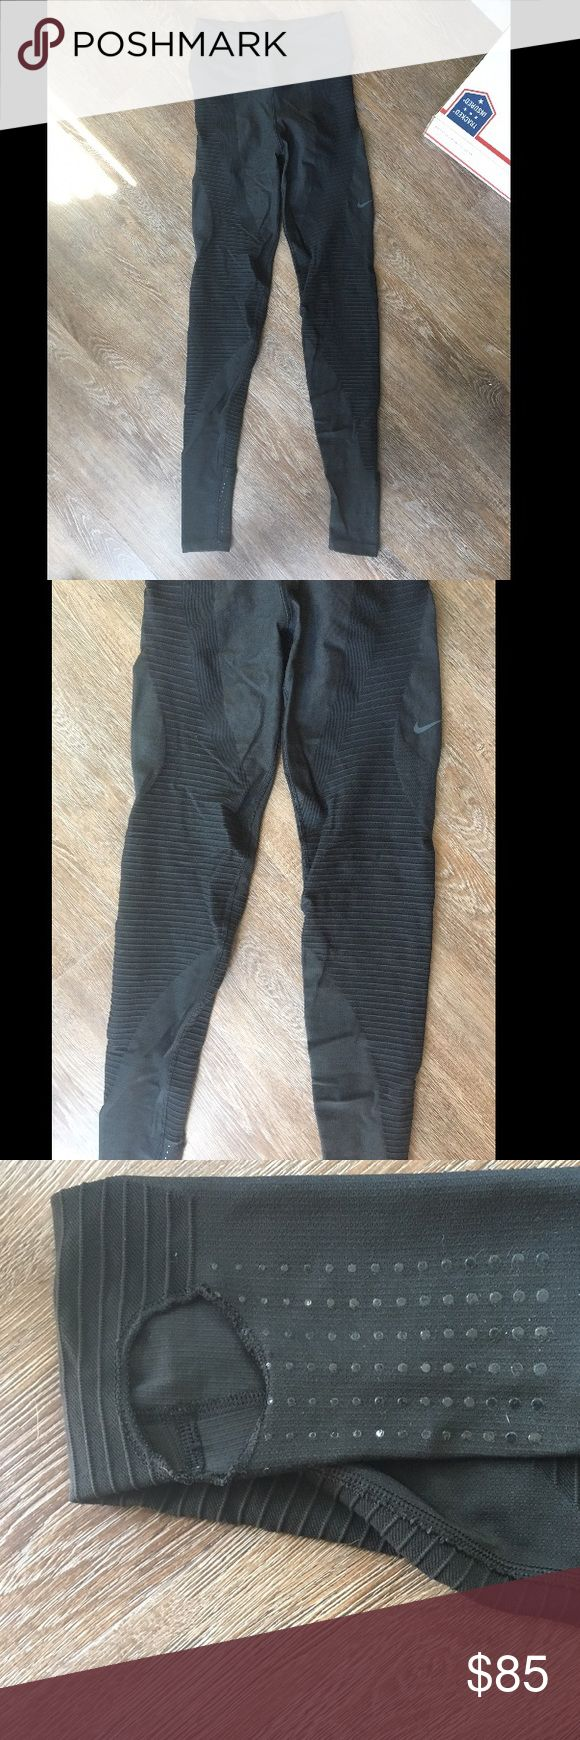 Nike zone sculpt tight Size- Small Condition- Like new 9.5/10 (worn once and washed once) Color- Different shades of black   No flaws that I've noticed   High waisted   Very stretchy   Heels holes with sticky bottoms for studio dancing  Great for people with long legs  Thanks for looking! Nike Pants Leggings